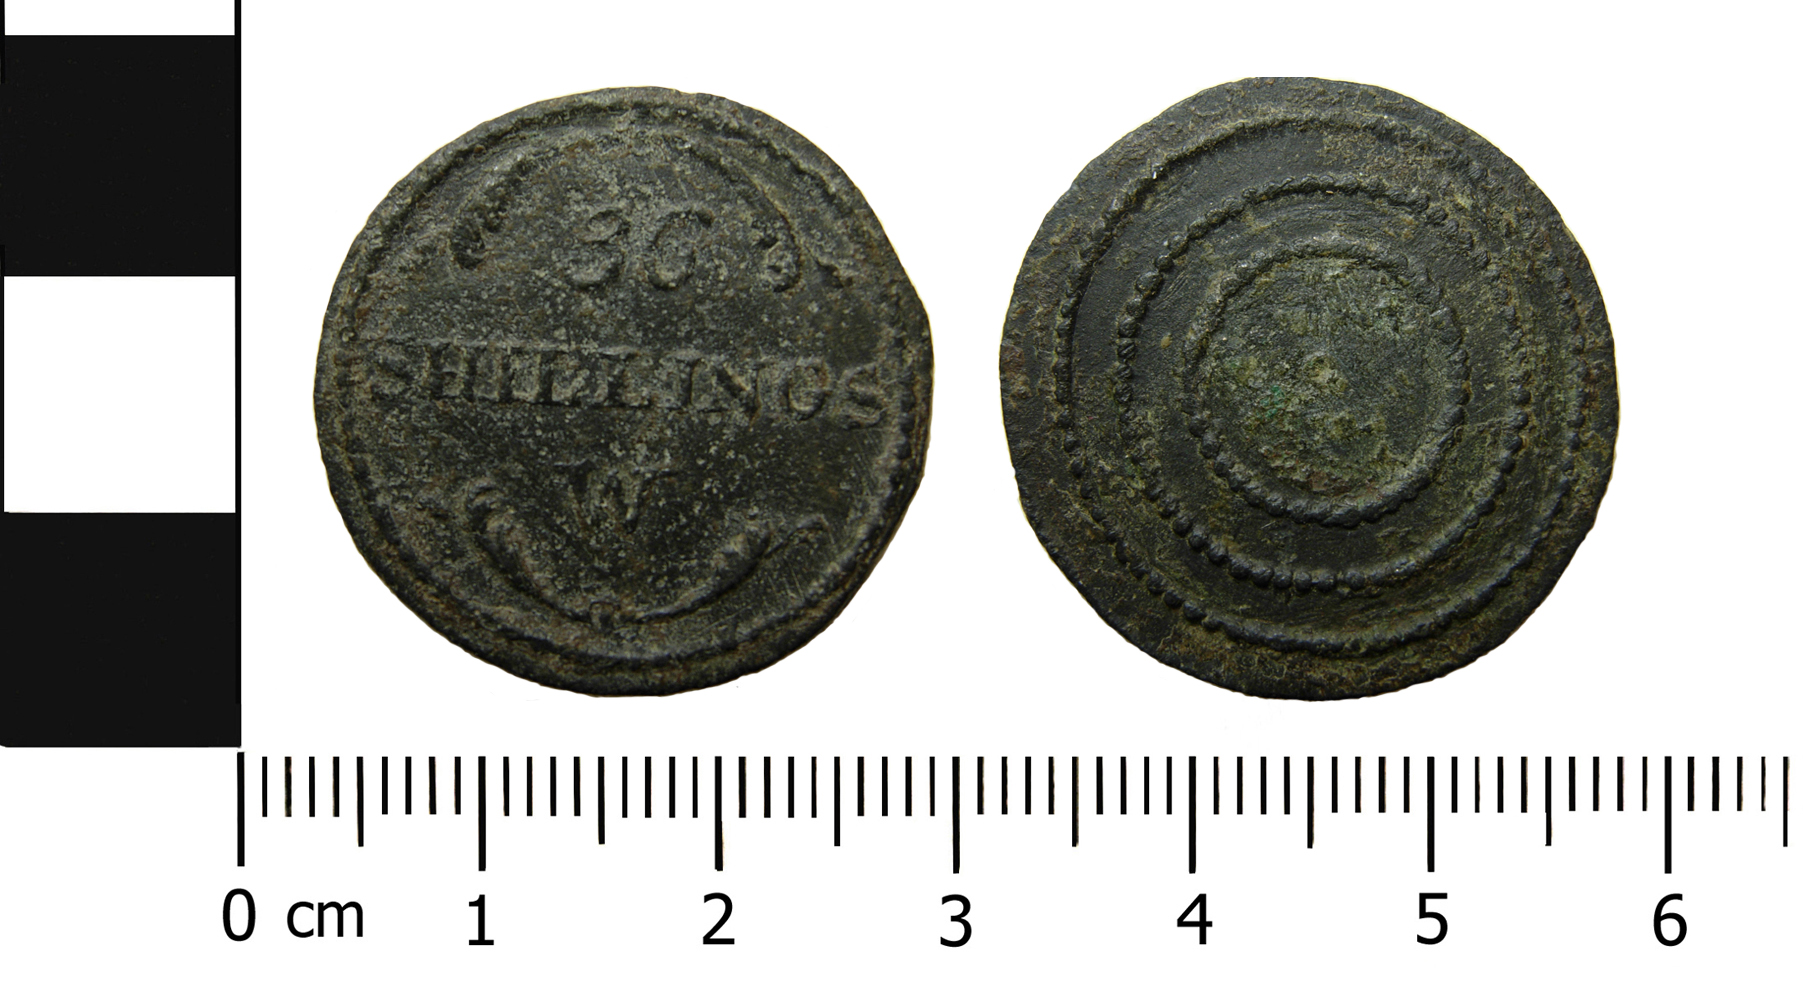 Coin weight made by C and L Proctor